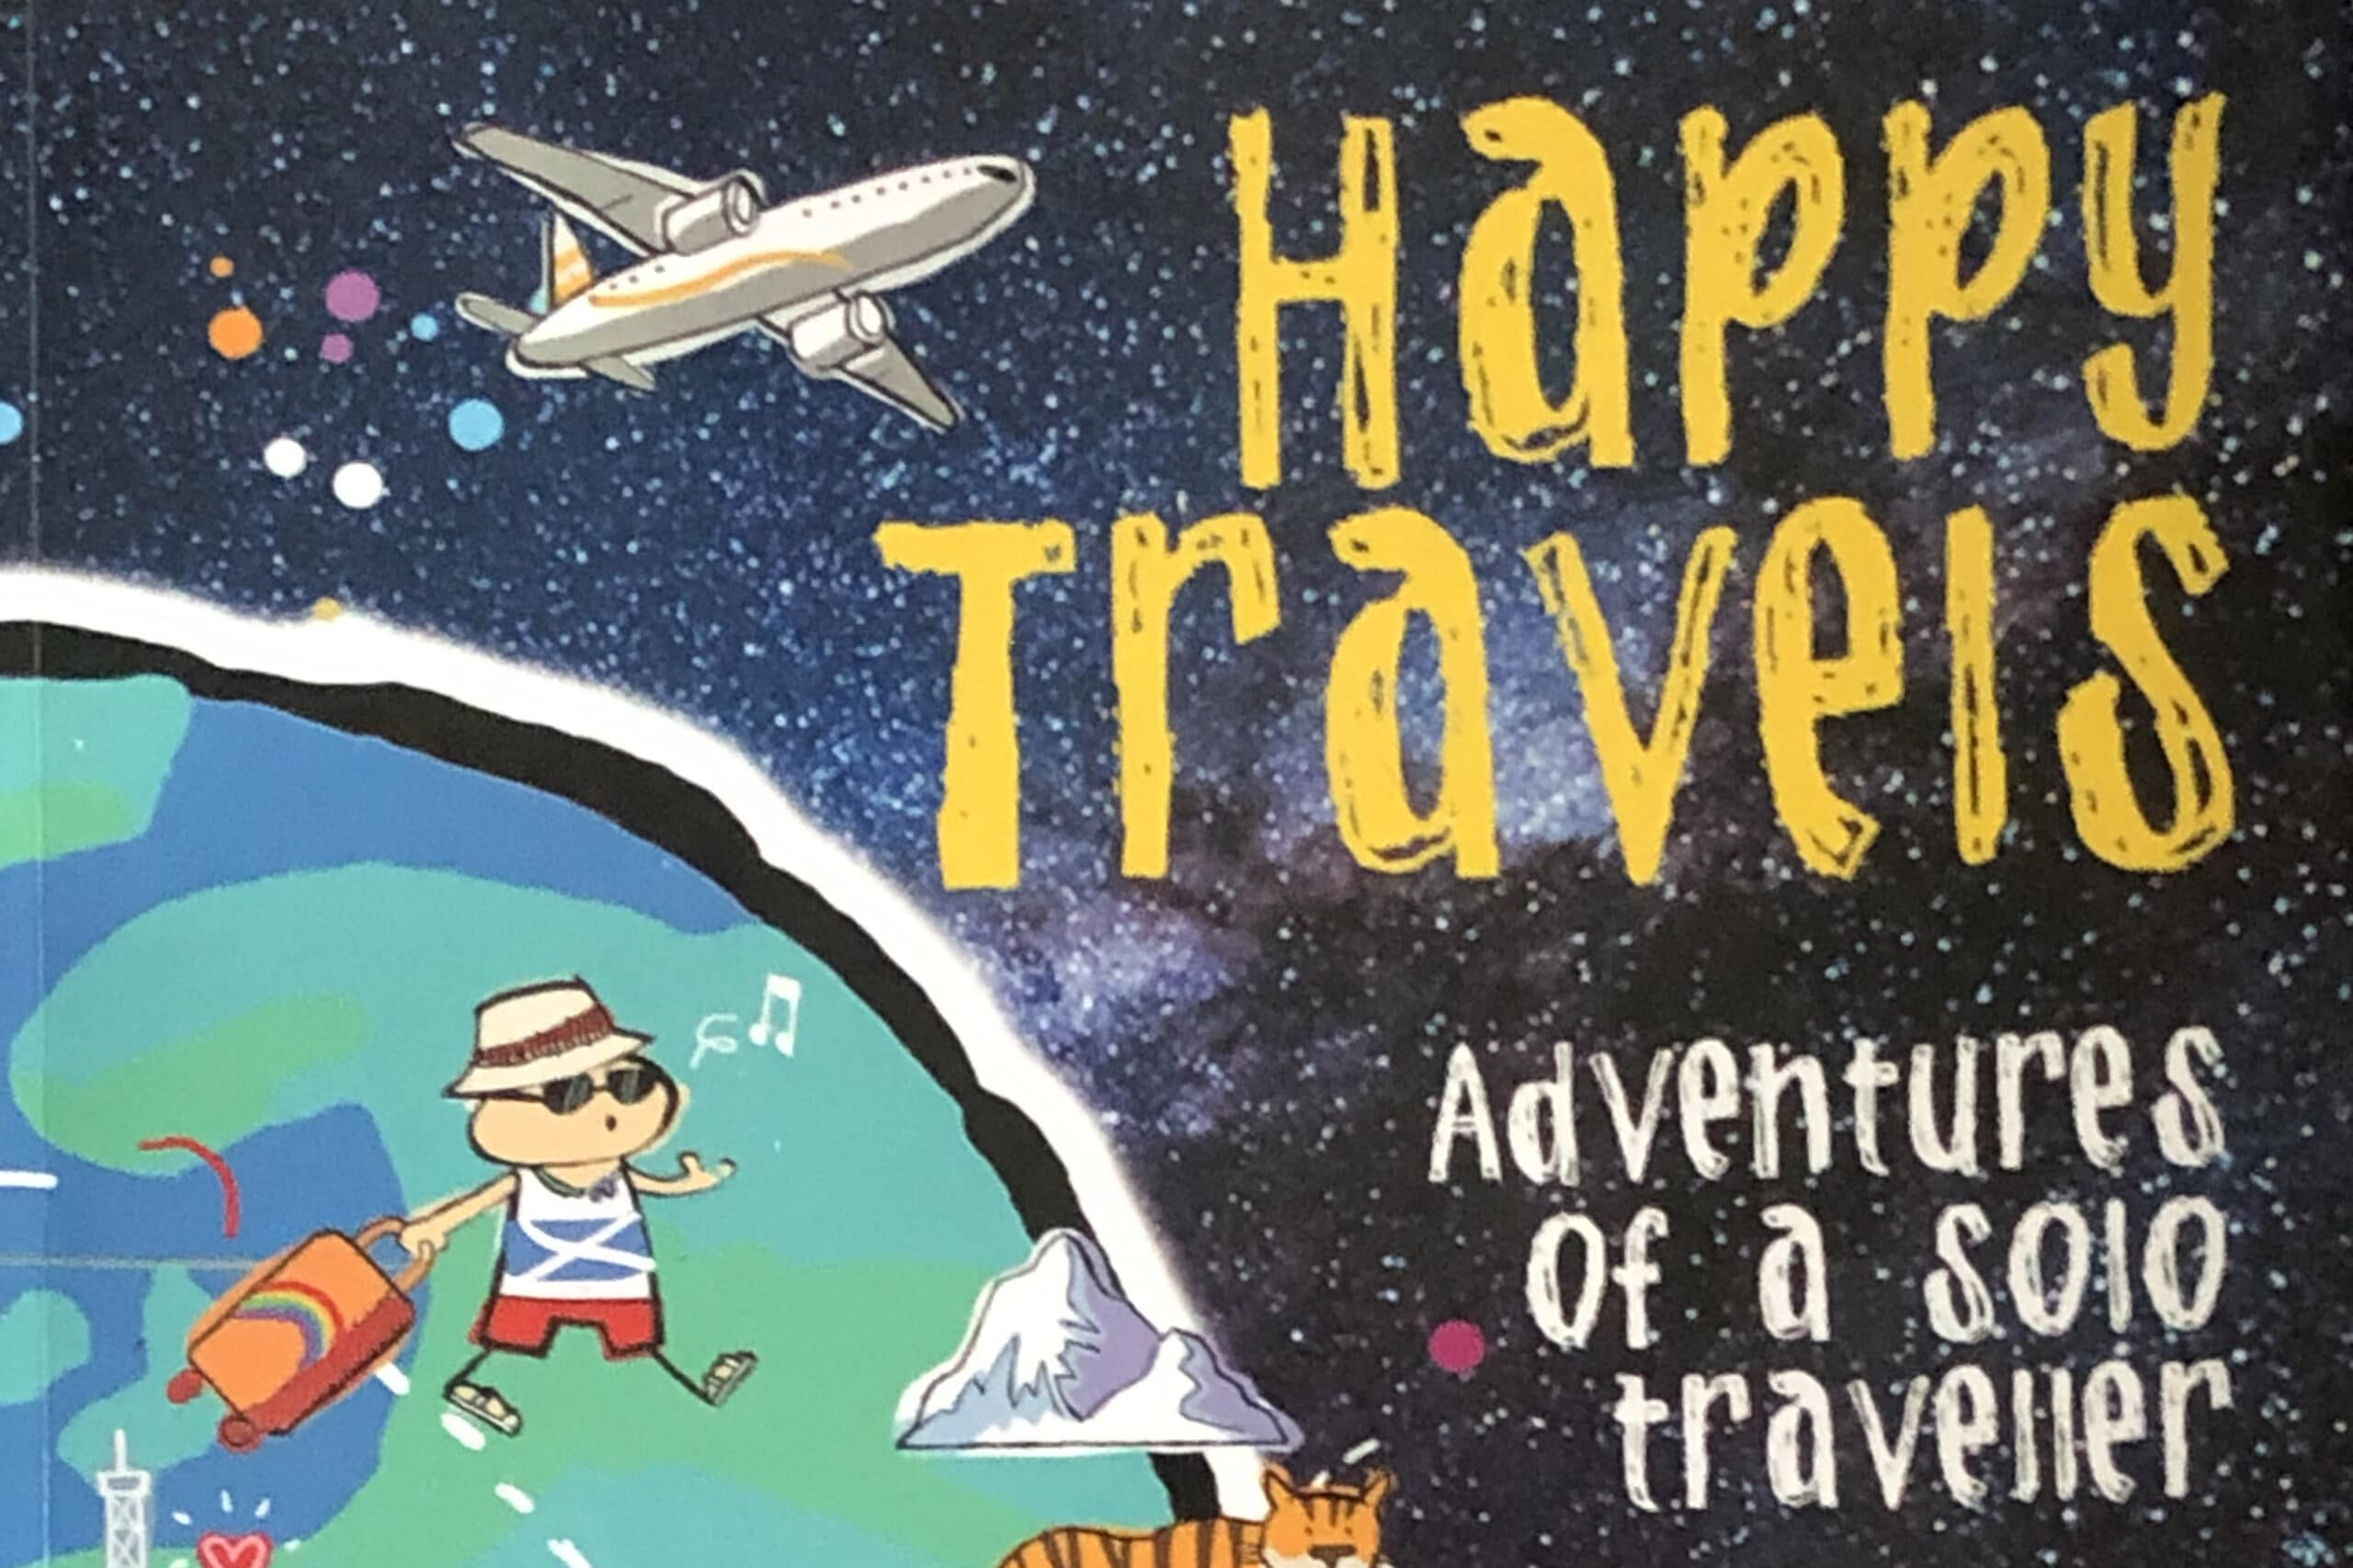 Happy Travels –Adventures of a Solo Traveller by Stewart Noble